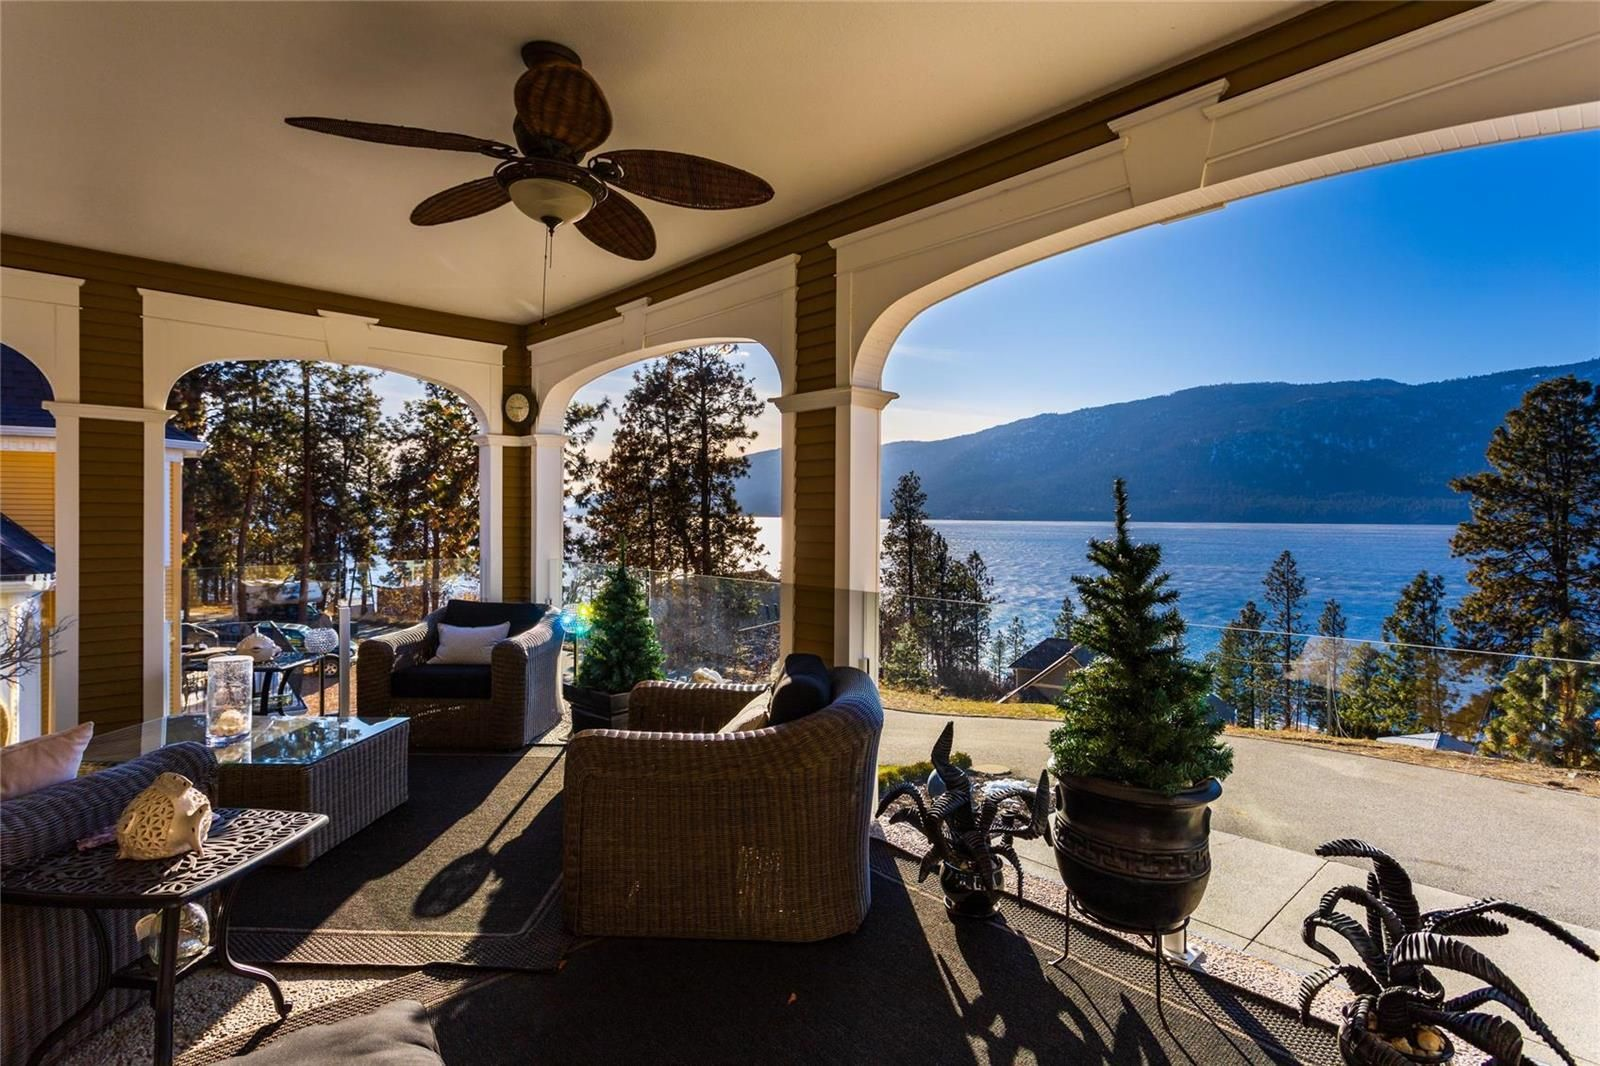 Main Photo: 10569 Okanagan Centre Road, W in Lake Country: House for sale : MLS®# 10230840